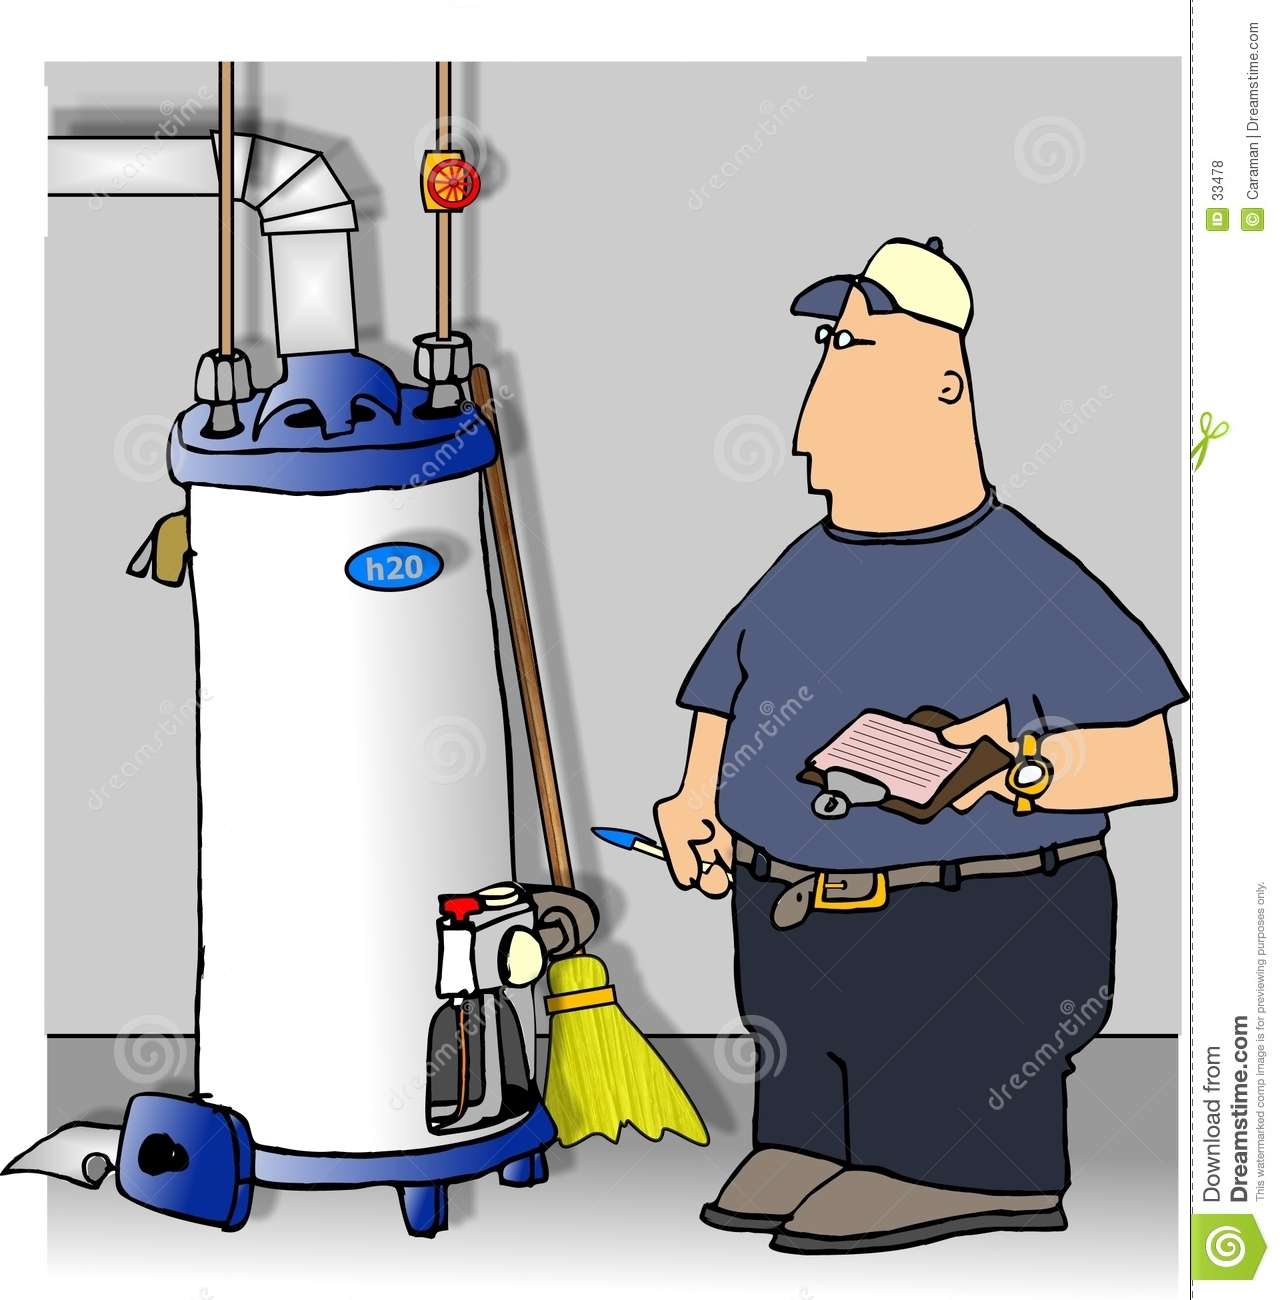 Illustration That I Created Depicts A Man Checking A Gas Water Heater